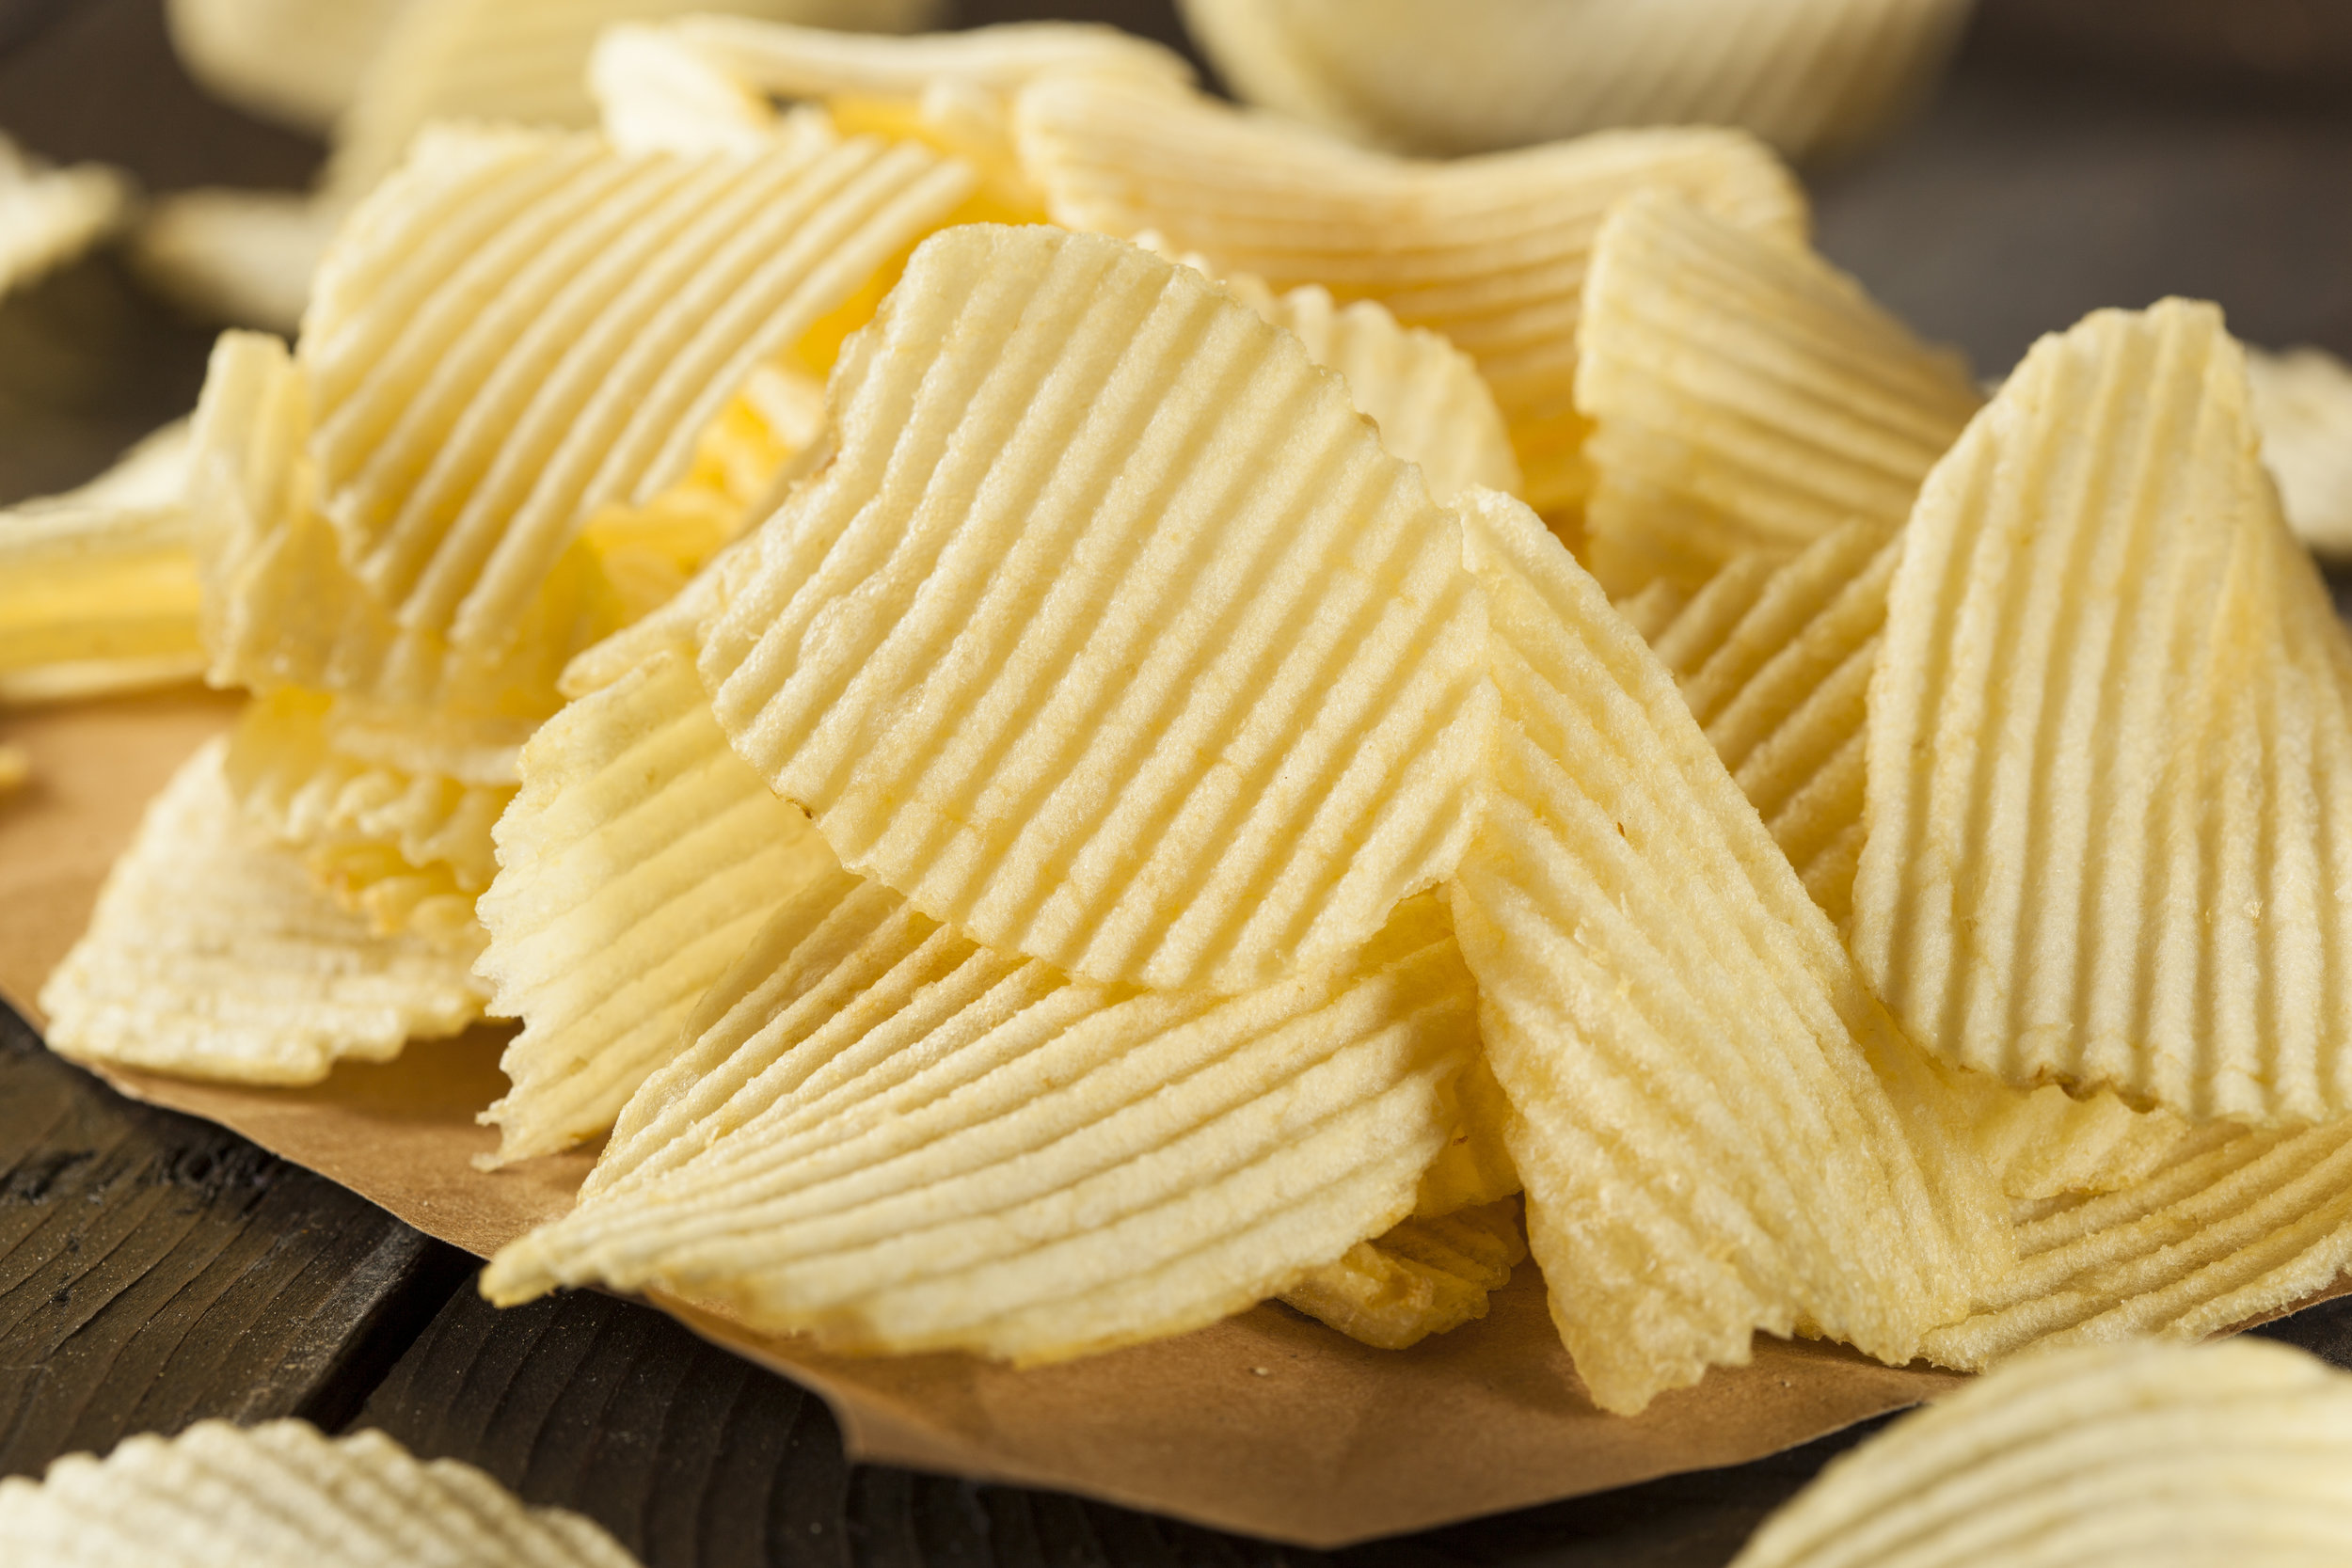 Task by Kirk Group helps the leading snack brands in Australia and New Zealand reduce printing costs.